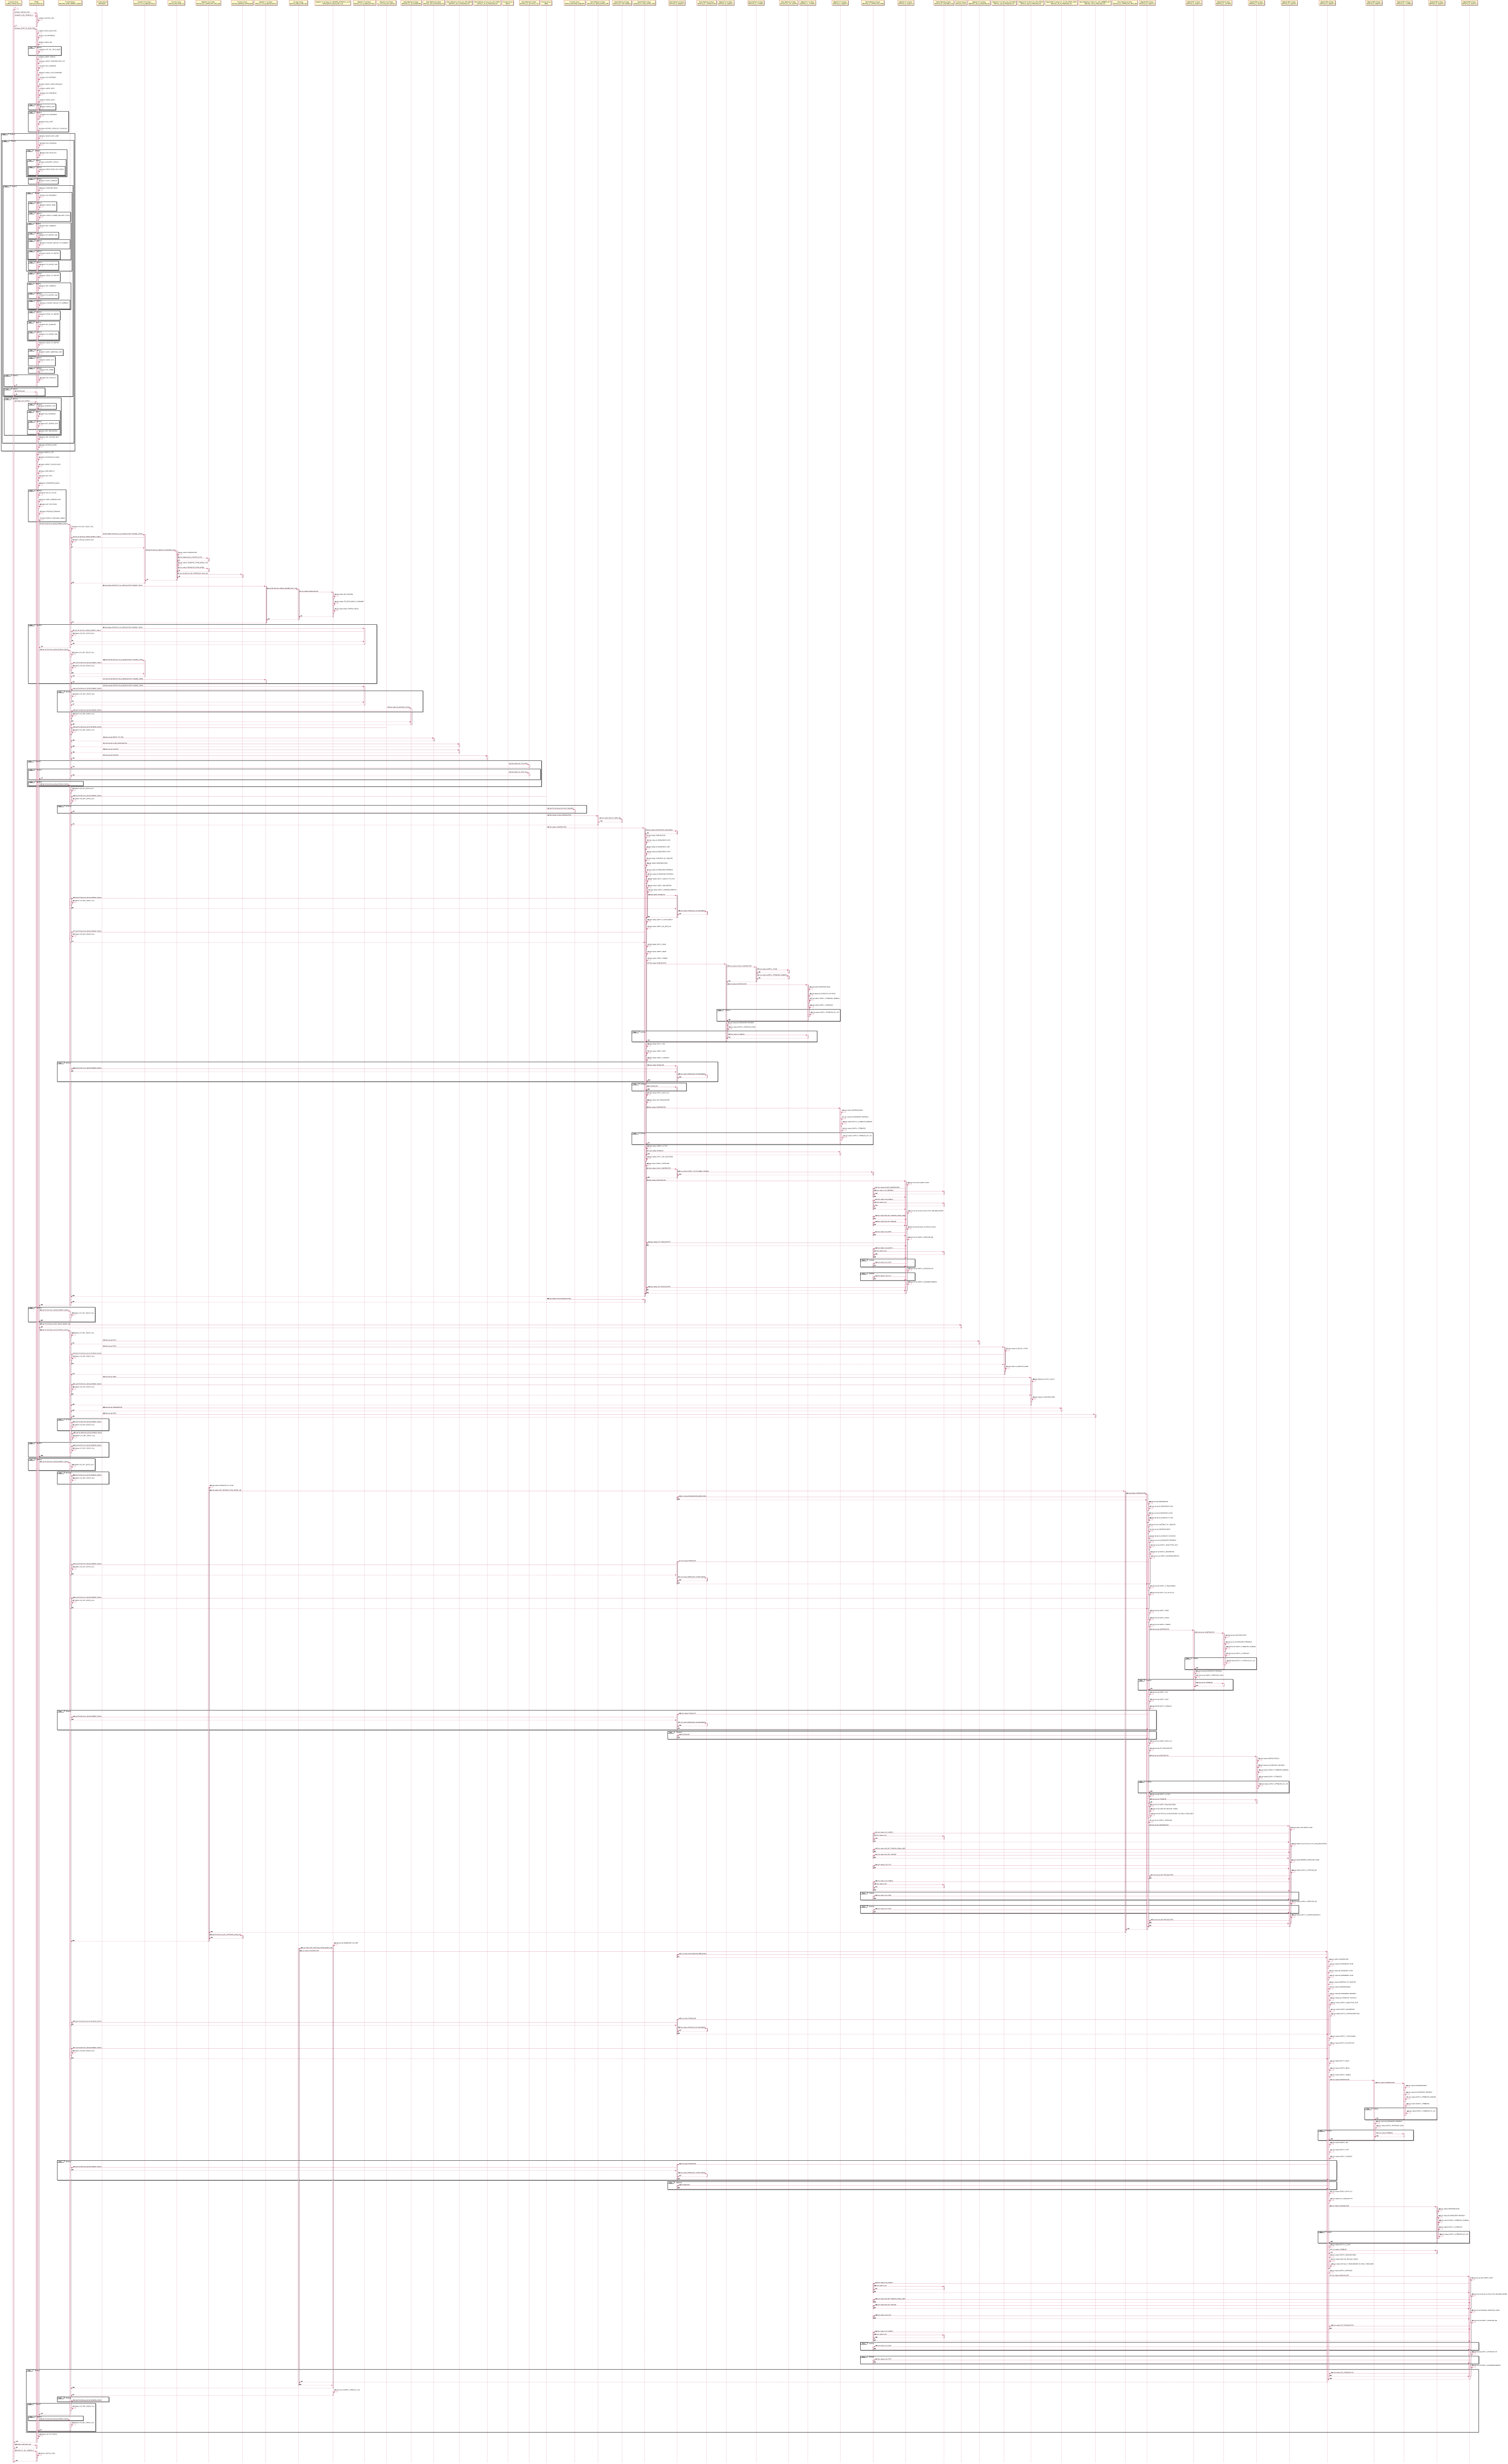 Abap trace to plantuml sequence diagram code gallery scn wiki this leads to a short feedback loop and learning is enjoyable if the image is not ccuart Image collections